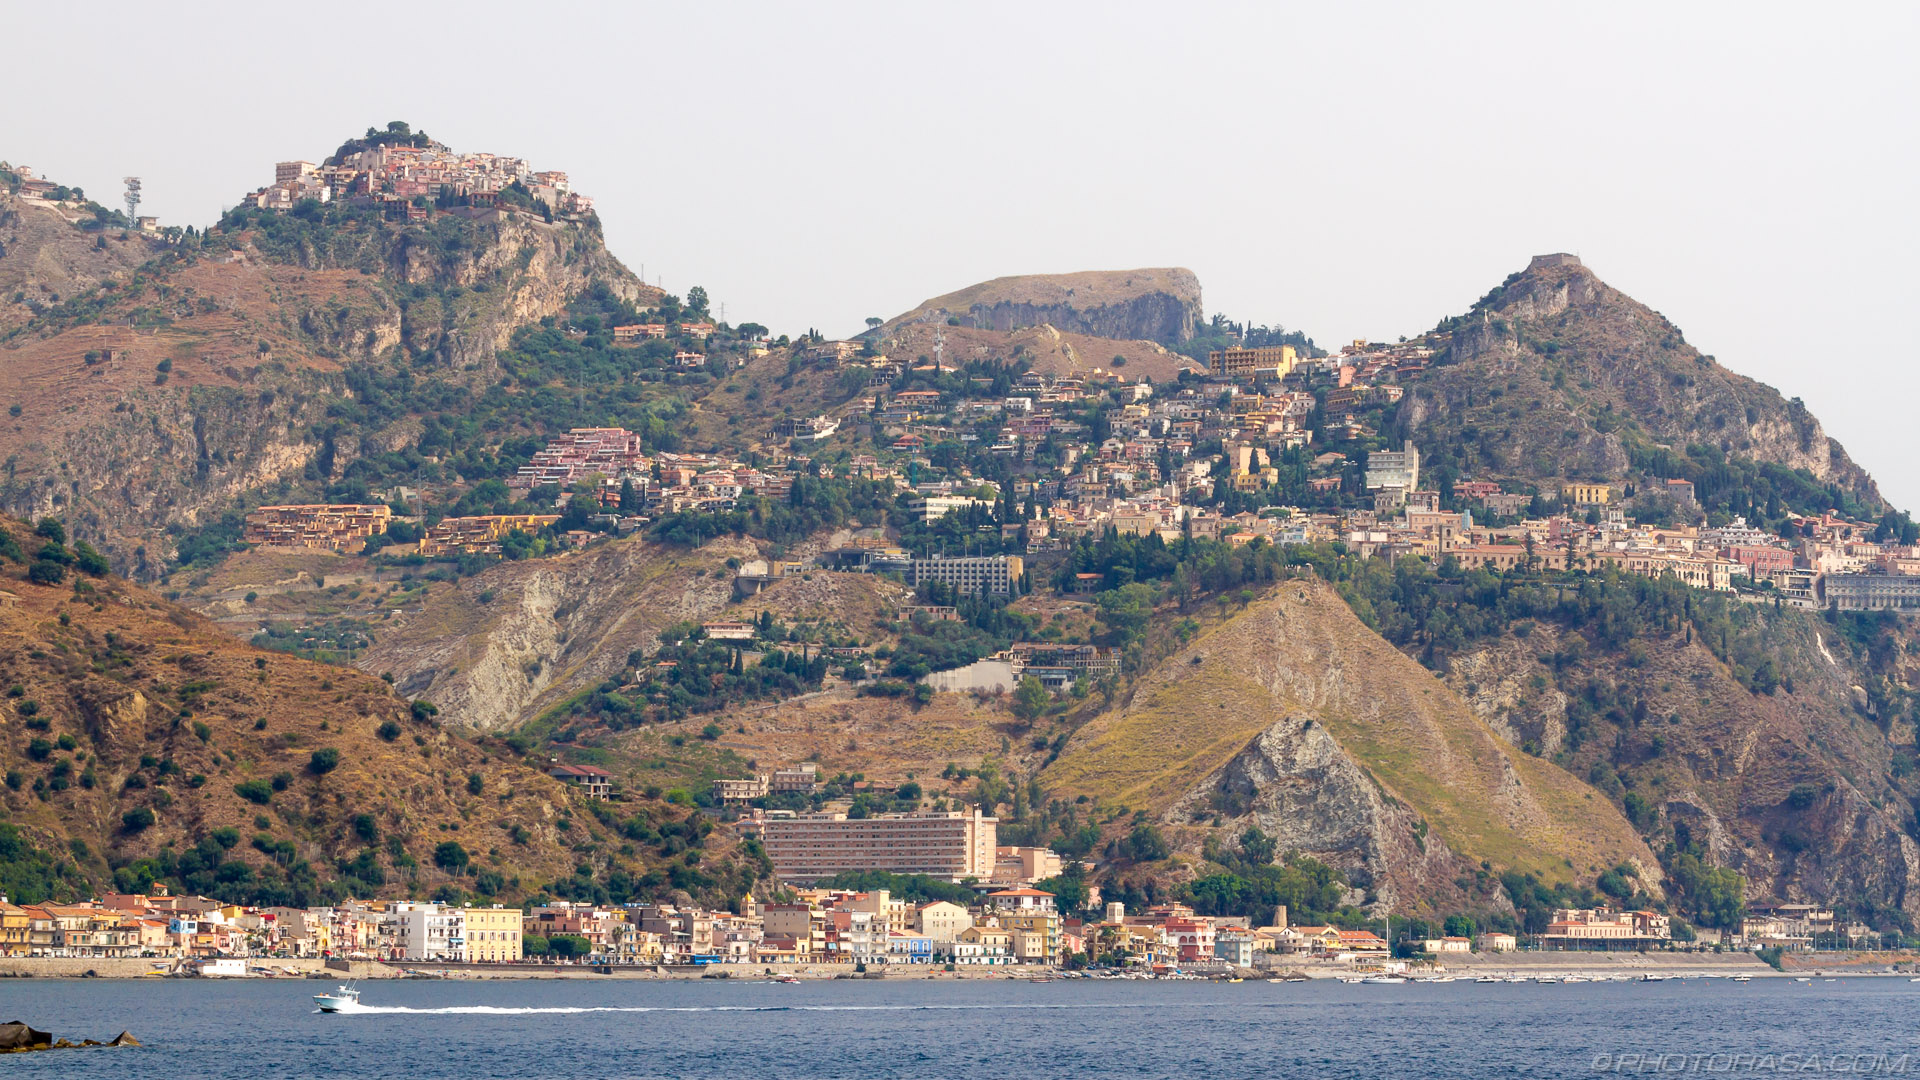 http://photorasa.com/east-sicilly-coast-lime/